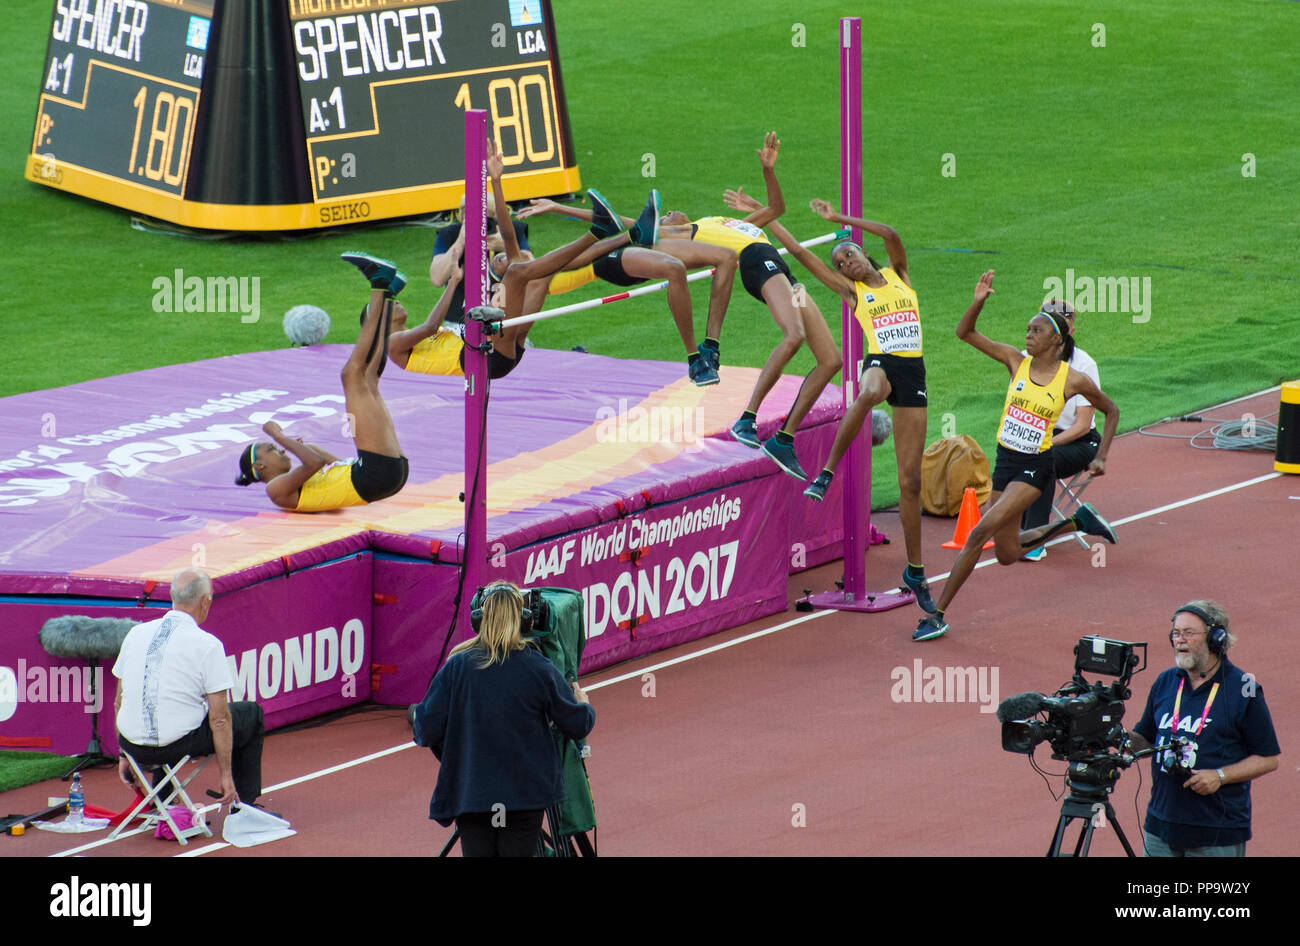 Time lapse high jump at the London 2017 World Athletics Championship - Stock Image